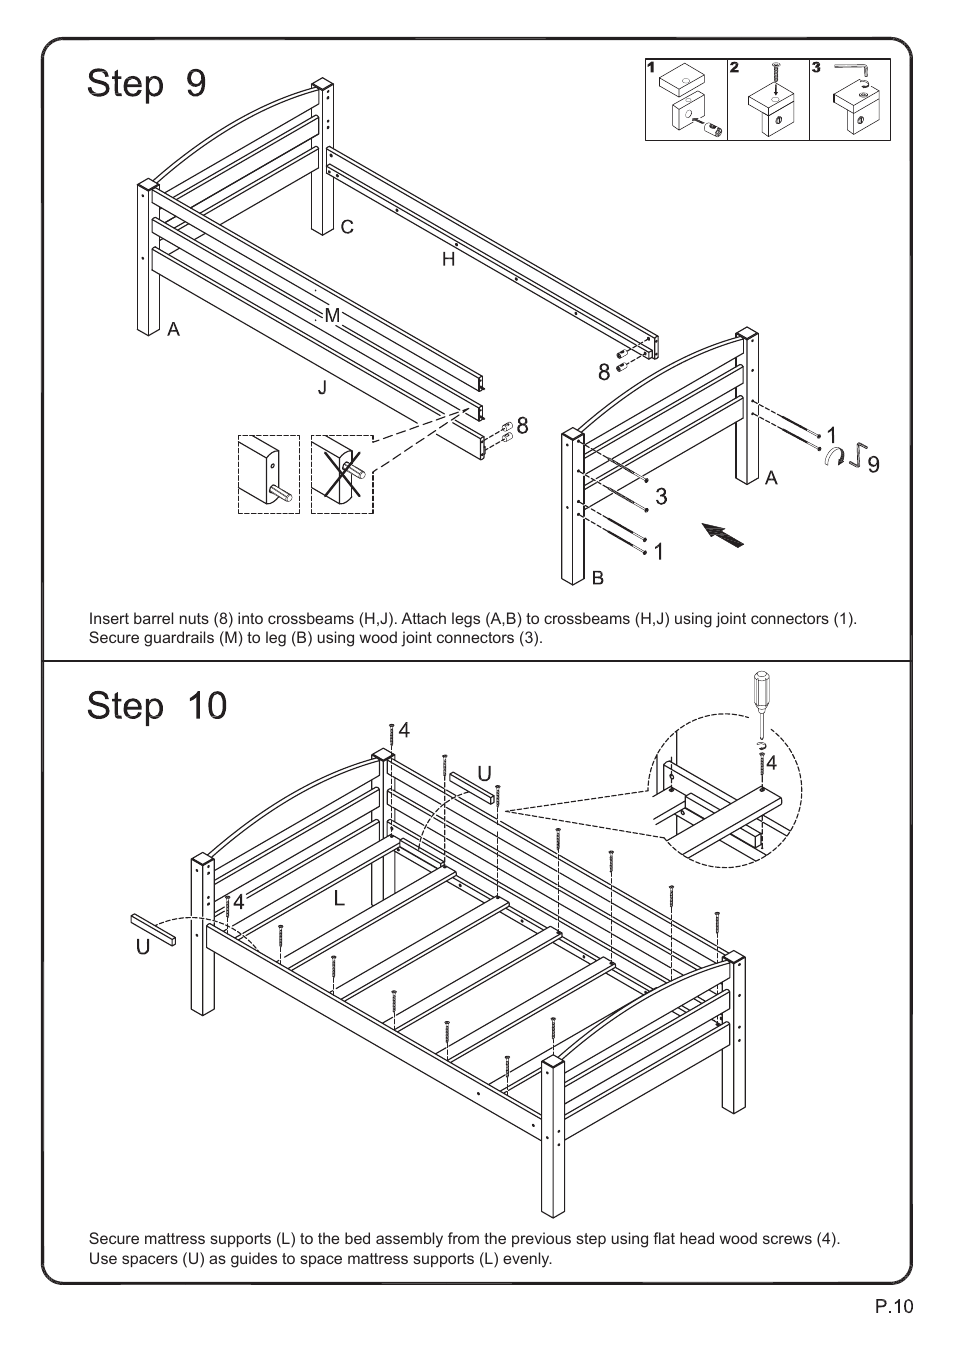 Panasonic Patio Furniture User Manual